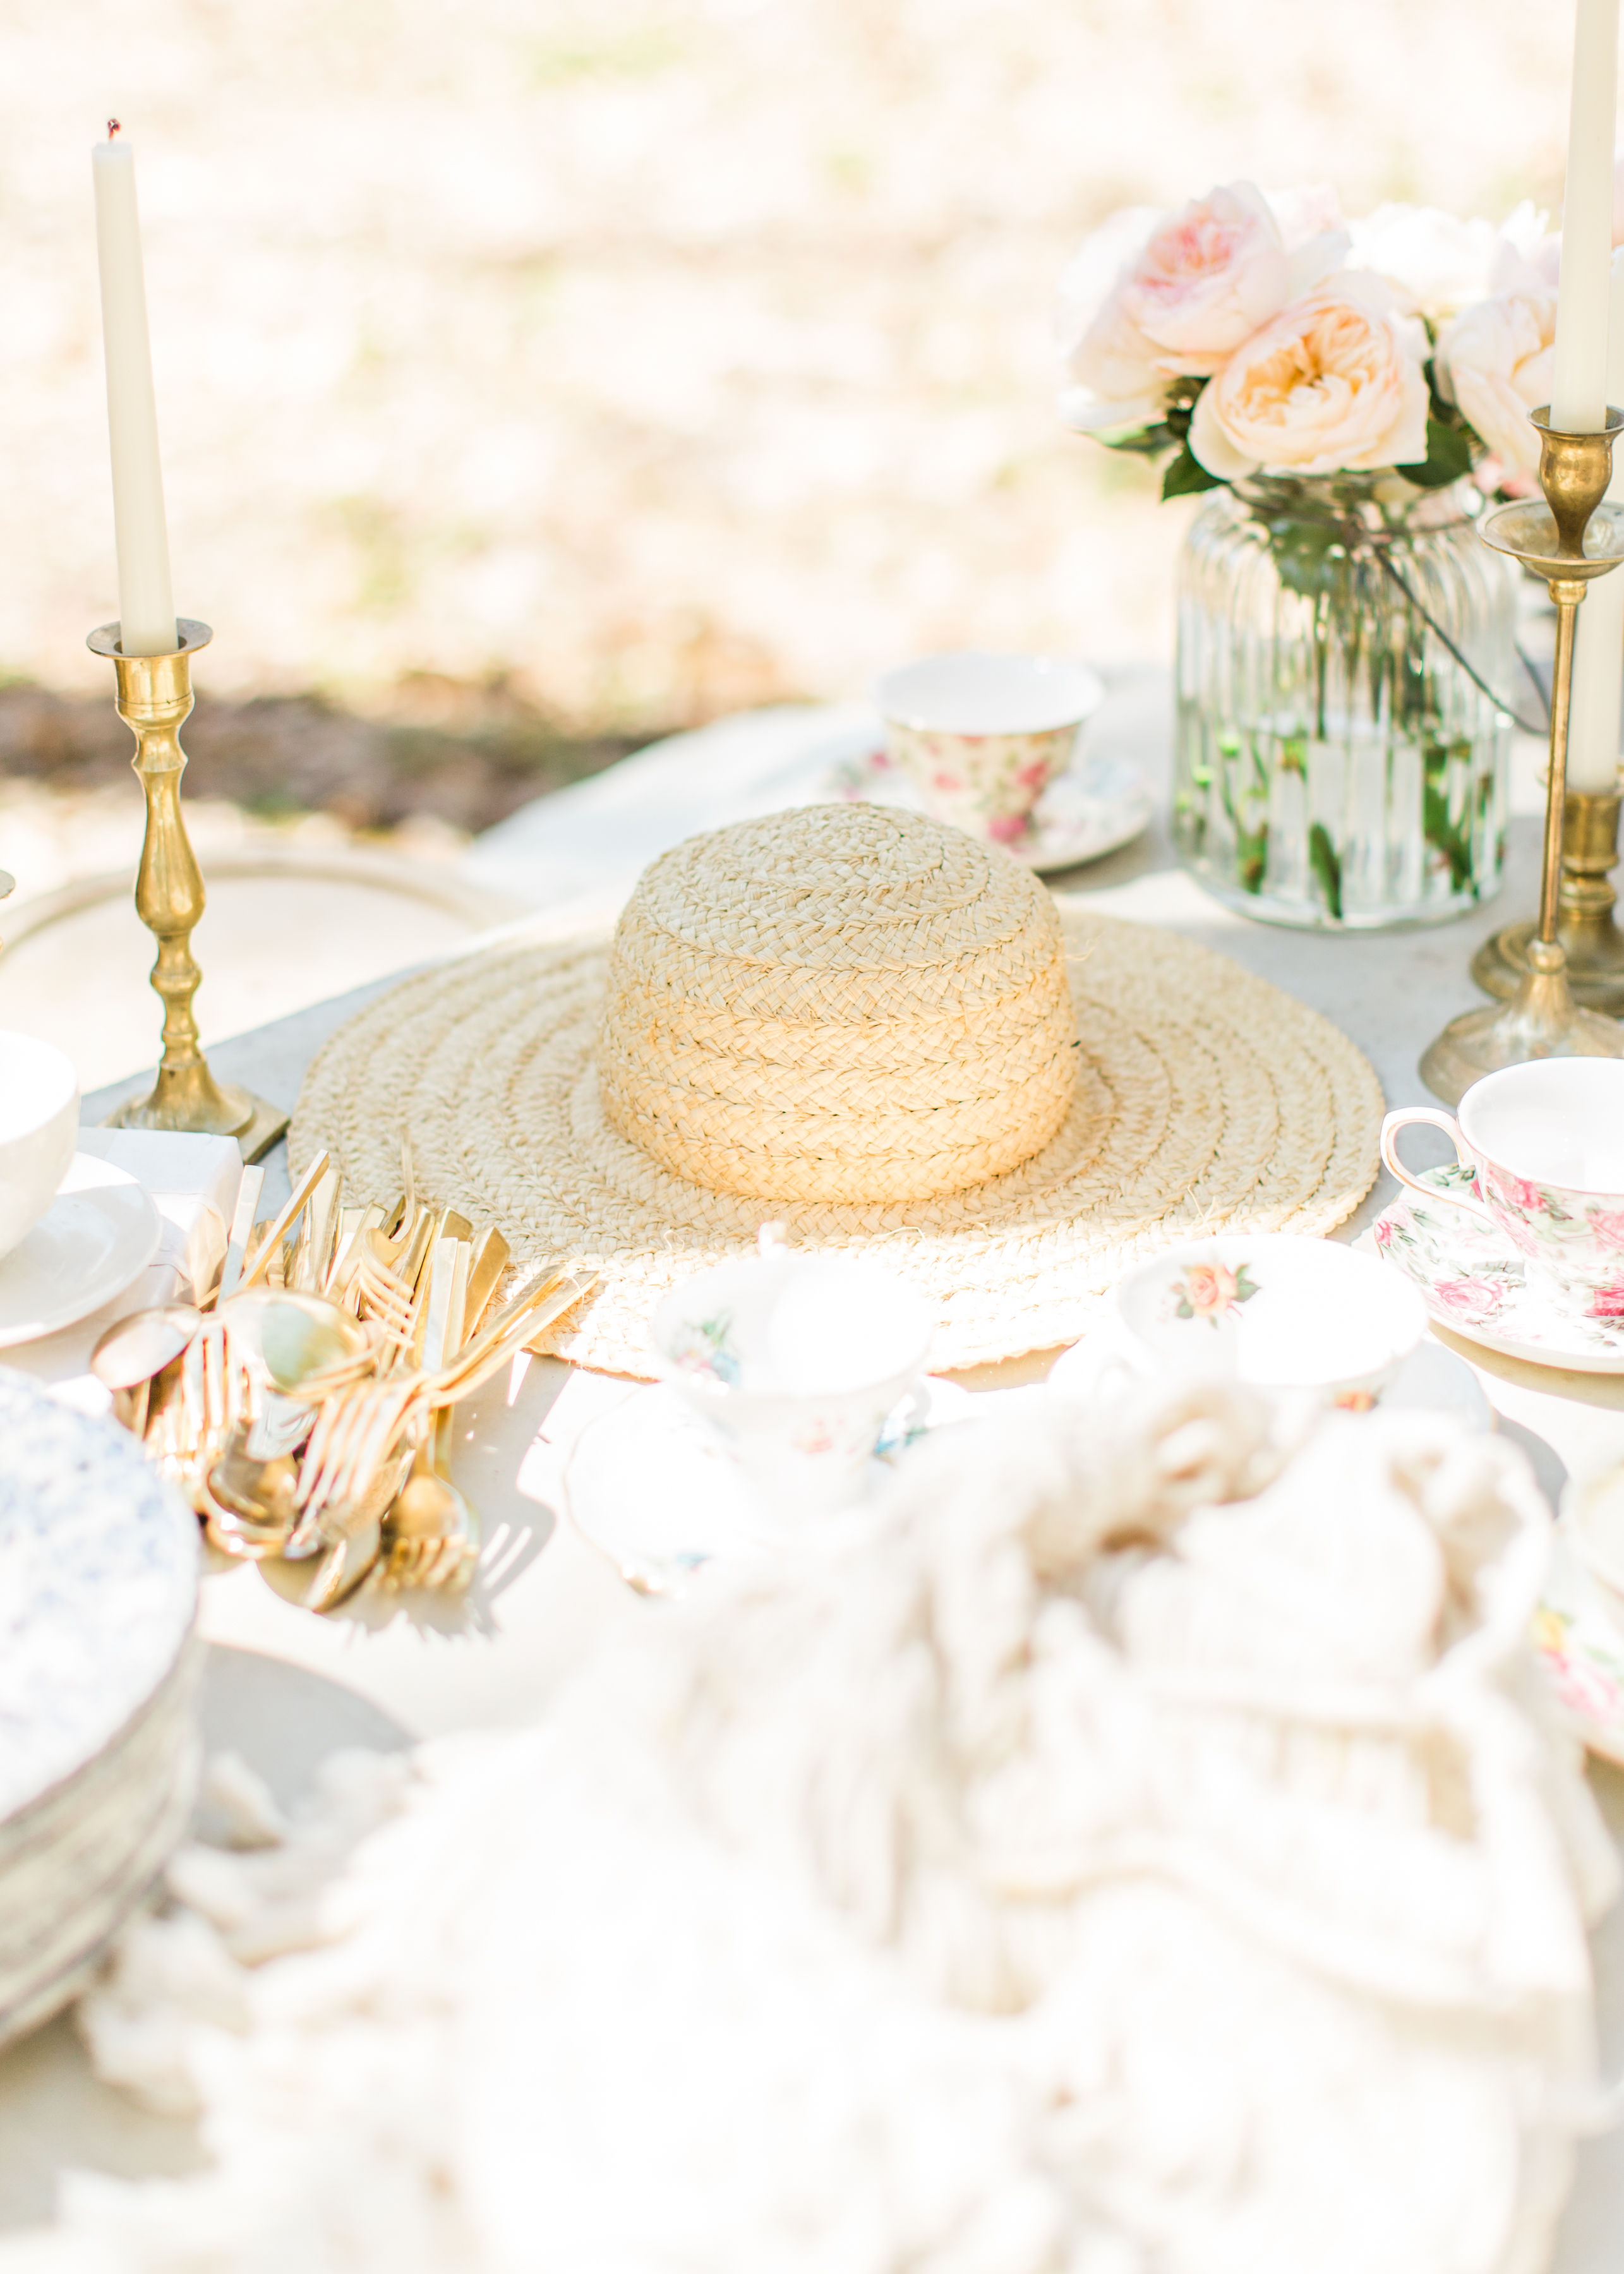 Welcome the sunshine with a whimsical outdoor spring tea and dessert party.